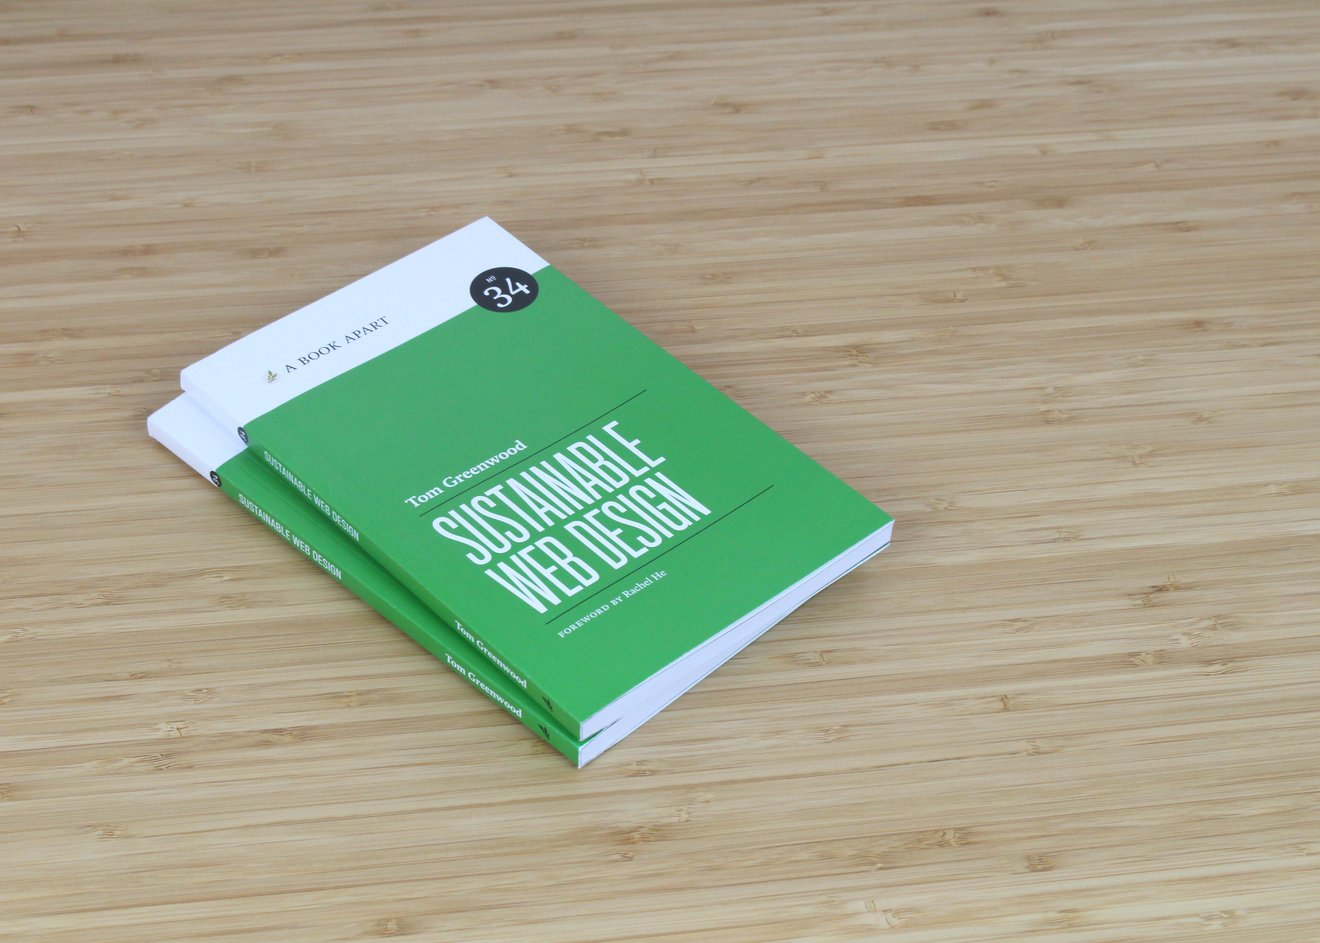 Two books with a green cover with white text: Tom Greenwood SUSTAINABLE WEB DESIGN; laying on a wooden surface